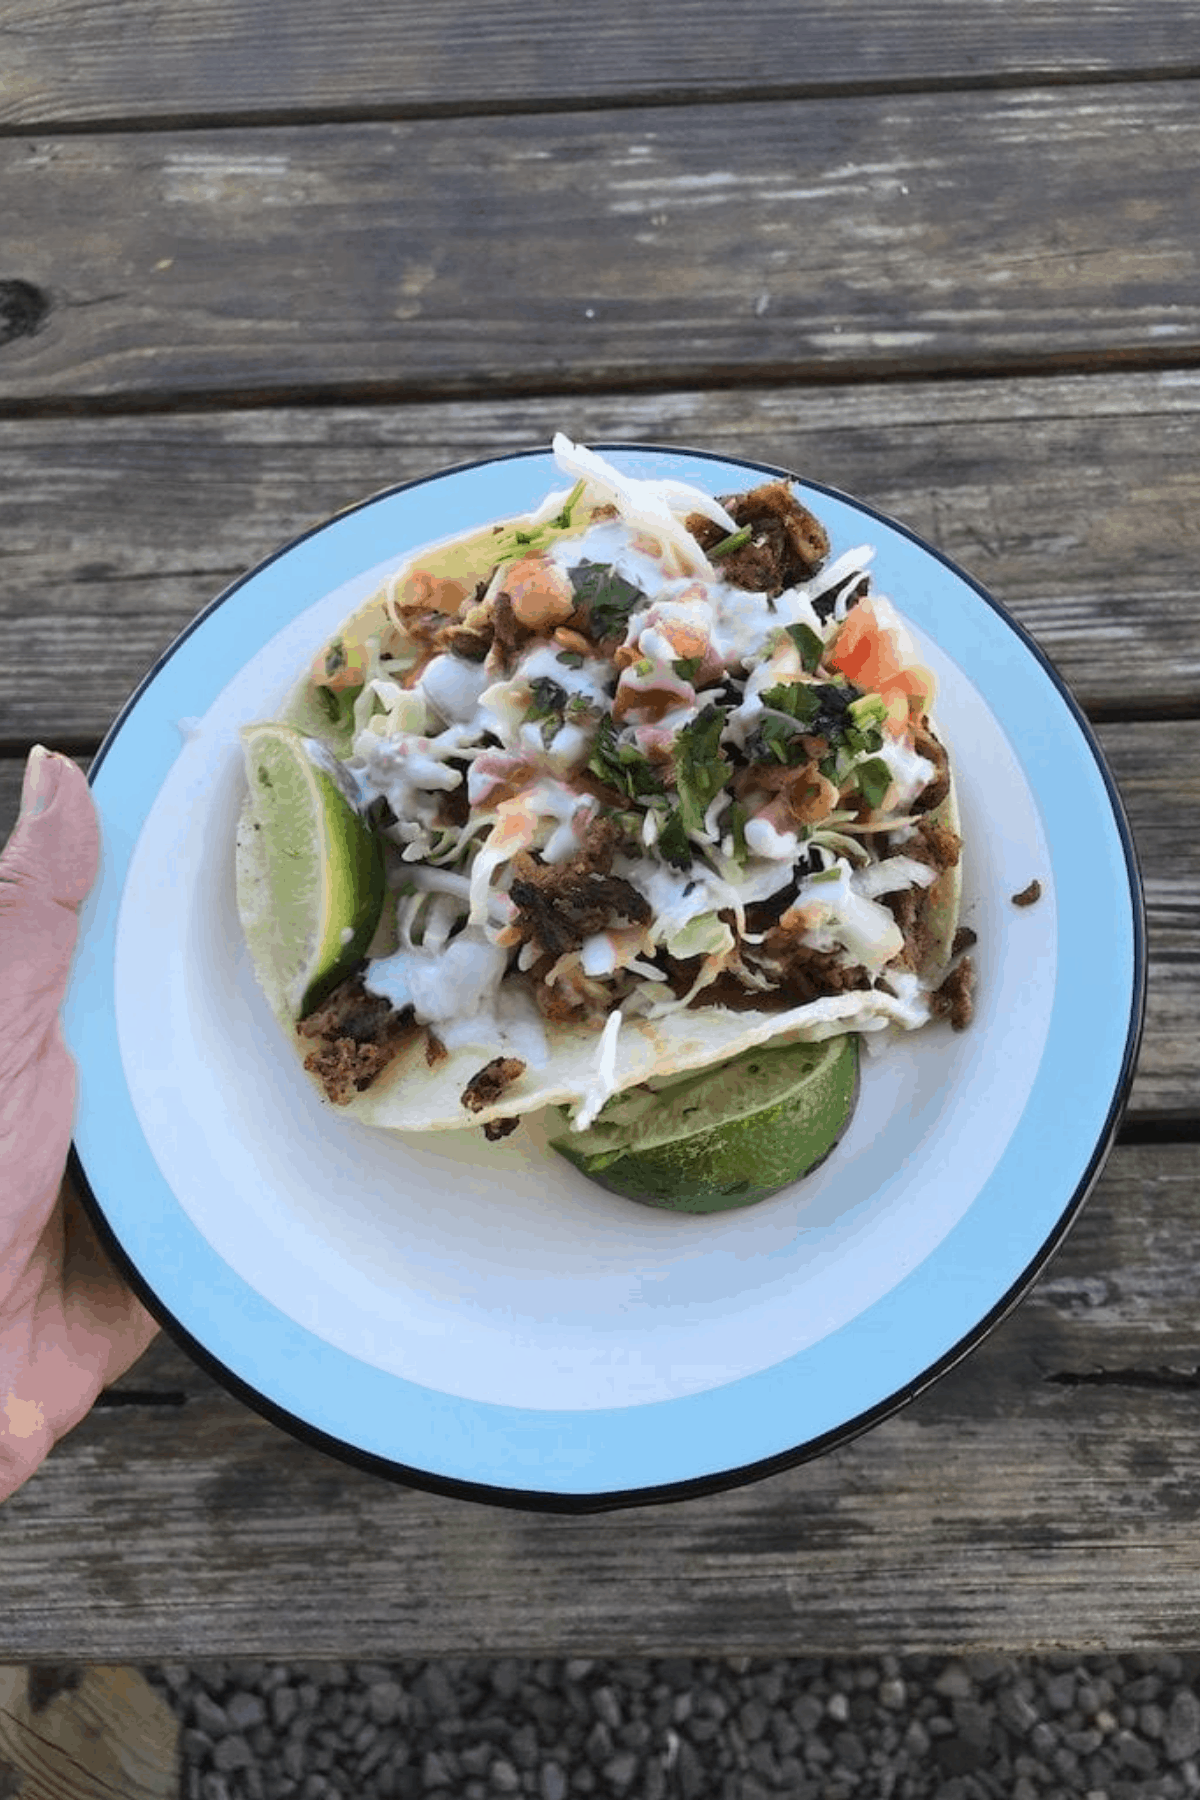 Carnitas tacos on a white plate being held over a wood table.